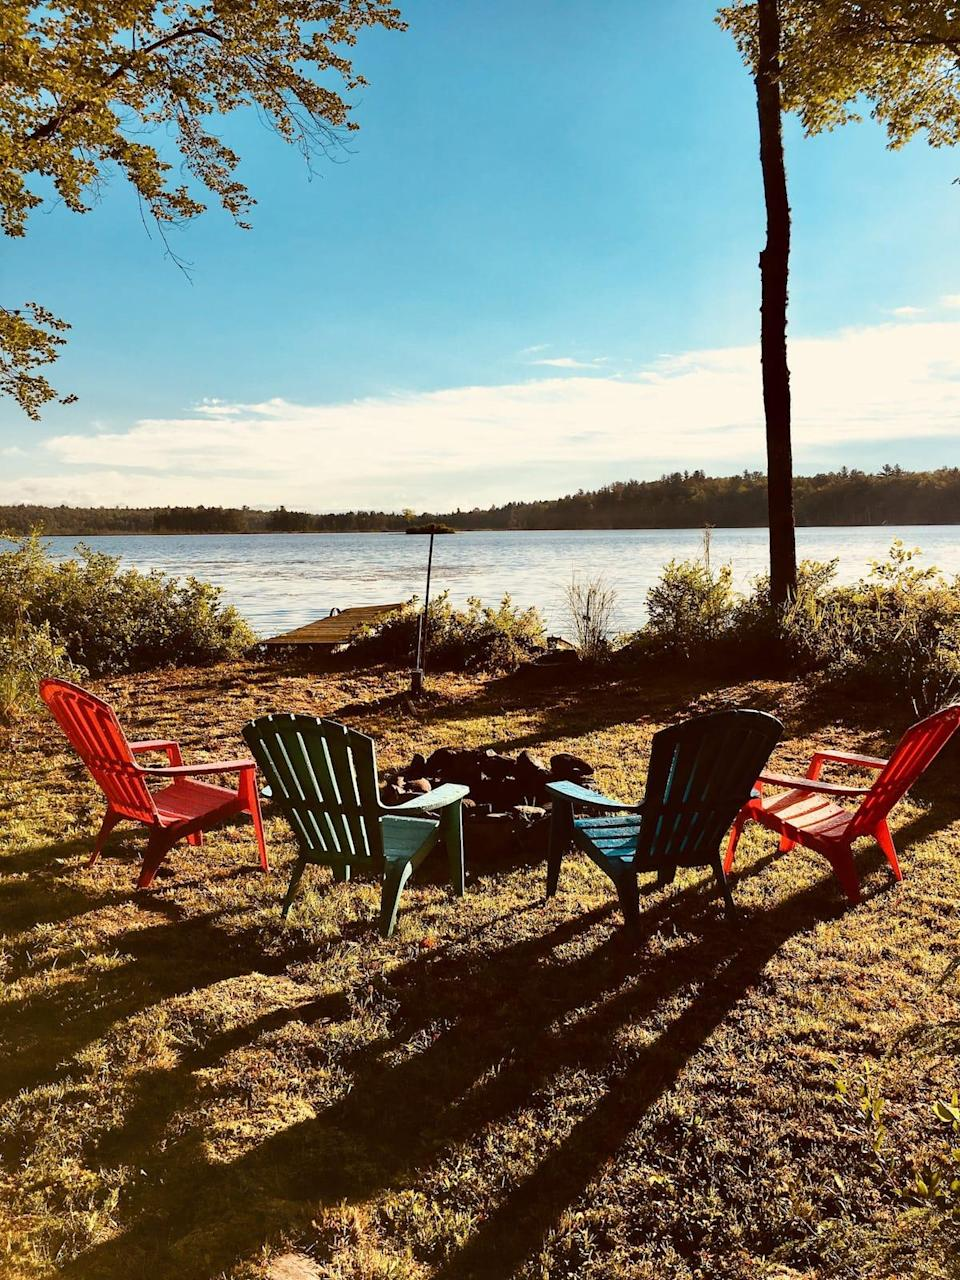 """<h2>Fahi Pond, Maine</h2><br><strong>Location: </strong>Embden, Maine<br><strong>Sleeps: </strong>6<br><strong>Price Per Night: </strong><a href=""""http://airbnb.pvxt.net/155a6g"""" rel=""""nofollow noopener"""" target=""""_blank"""" data-ylk=""""slk:$120"""" class=""""link rapid-noclick-resp"""">$120</a><br><br>""""A four-season homemade mostly from reclaimed materials offers a rustic feel, yet provides modern conveniences. On our private wooded lot with 367 feet of water frontage on serene Fahi Pond, you can come to get away from it all, sit back and relax, reduce stress & find your zen. Or, if it's outdoor adventure you prefer, start with touring the pond on our kayaks, while listening for the loons and watching for a deer out for a stroll.""""<br><br><h3>Book <a href=""""http://airbnb.pvxt.net/155a6g"""" rel=""""nofollow noopener"""" target=""""_blank"""" data-ylk=""""slk:Fahi Pond Retreat"""" class=""""link rapid-noclick-resp"""">Fahi Pond Retreat</a></h3>"""